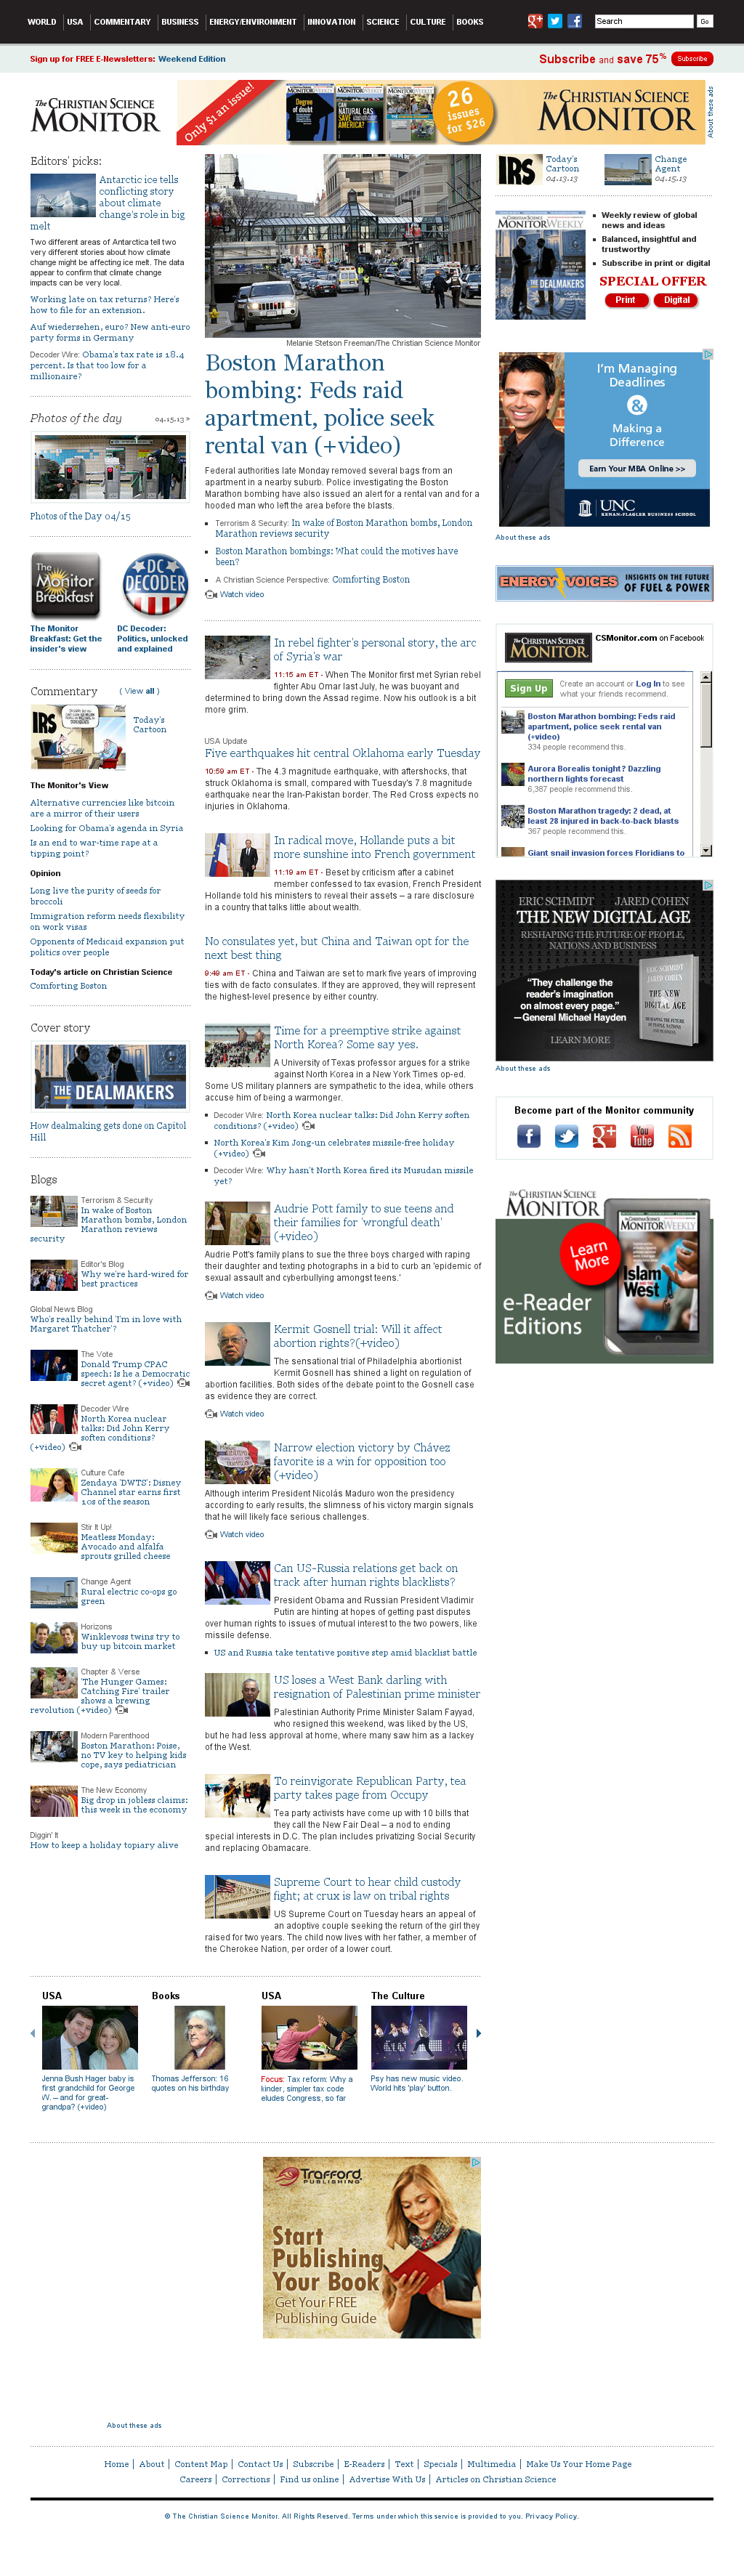 The Christian Science Monitor at Tuesday April 16, 2013, 4:04 p.m. UTC